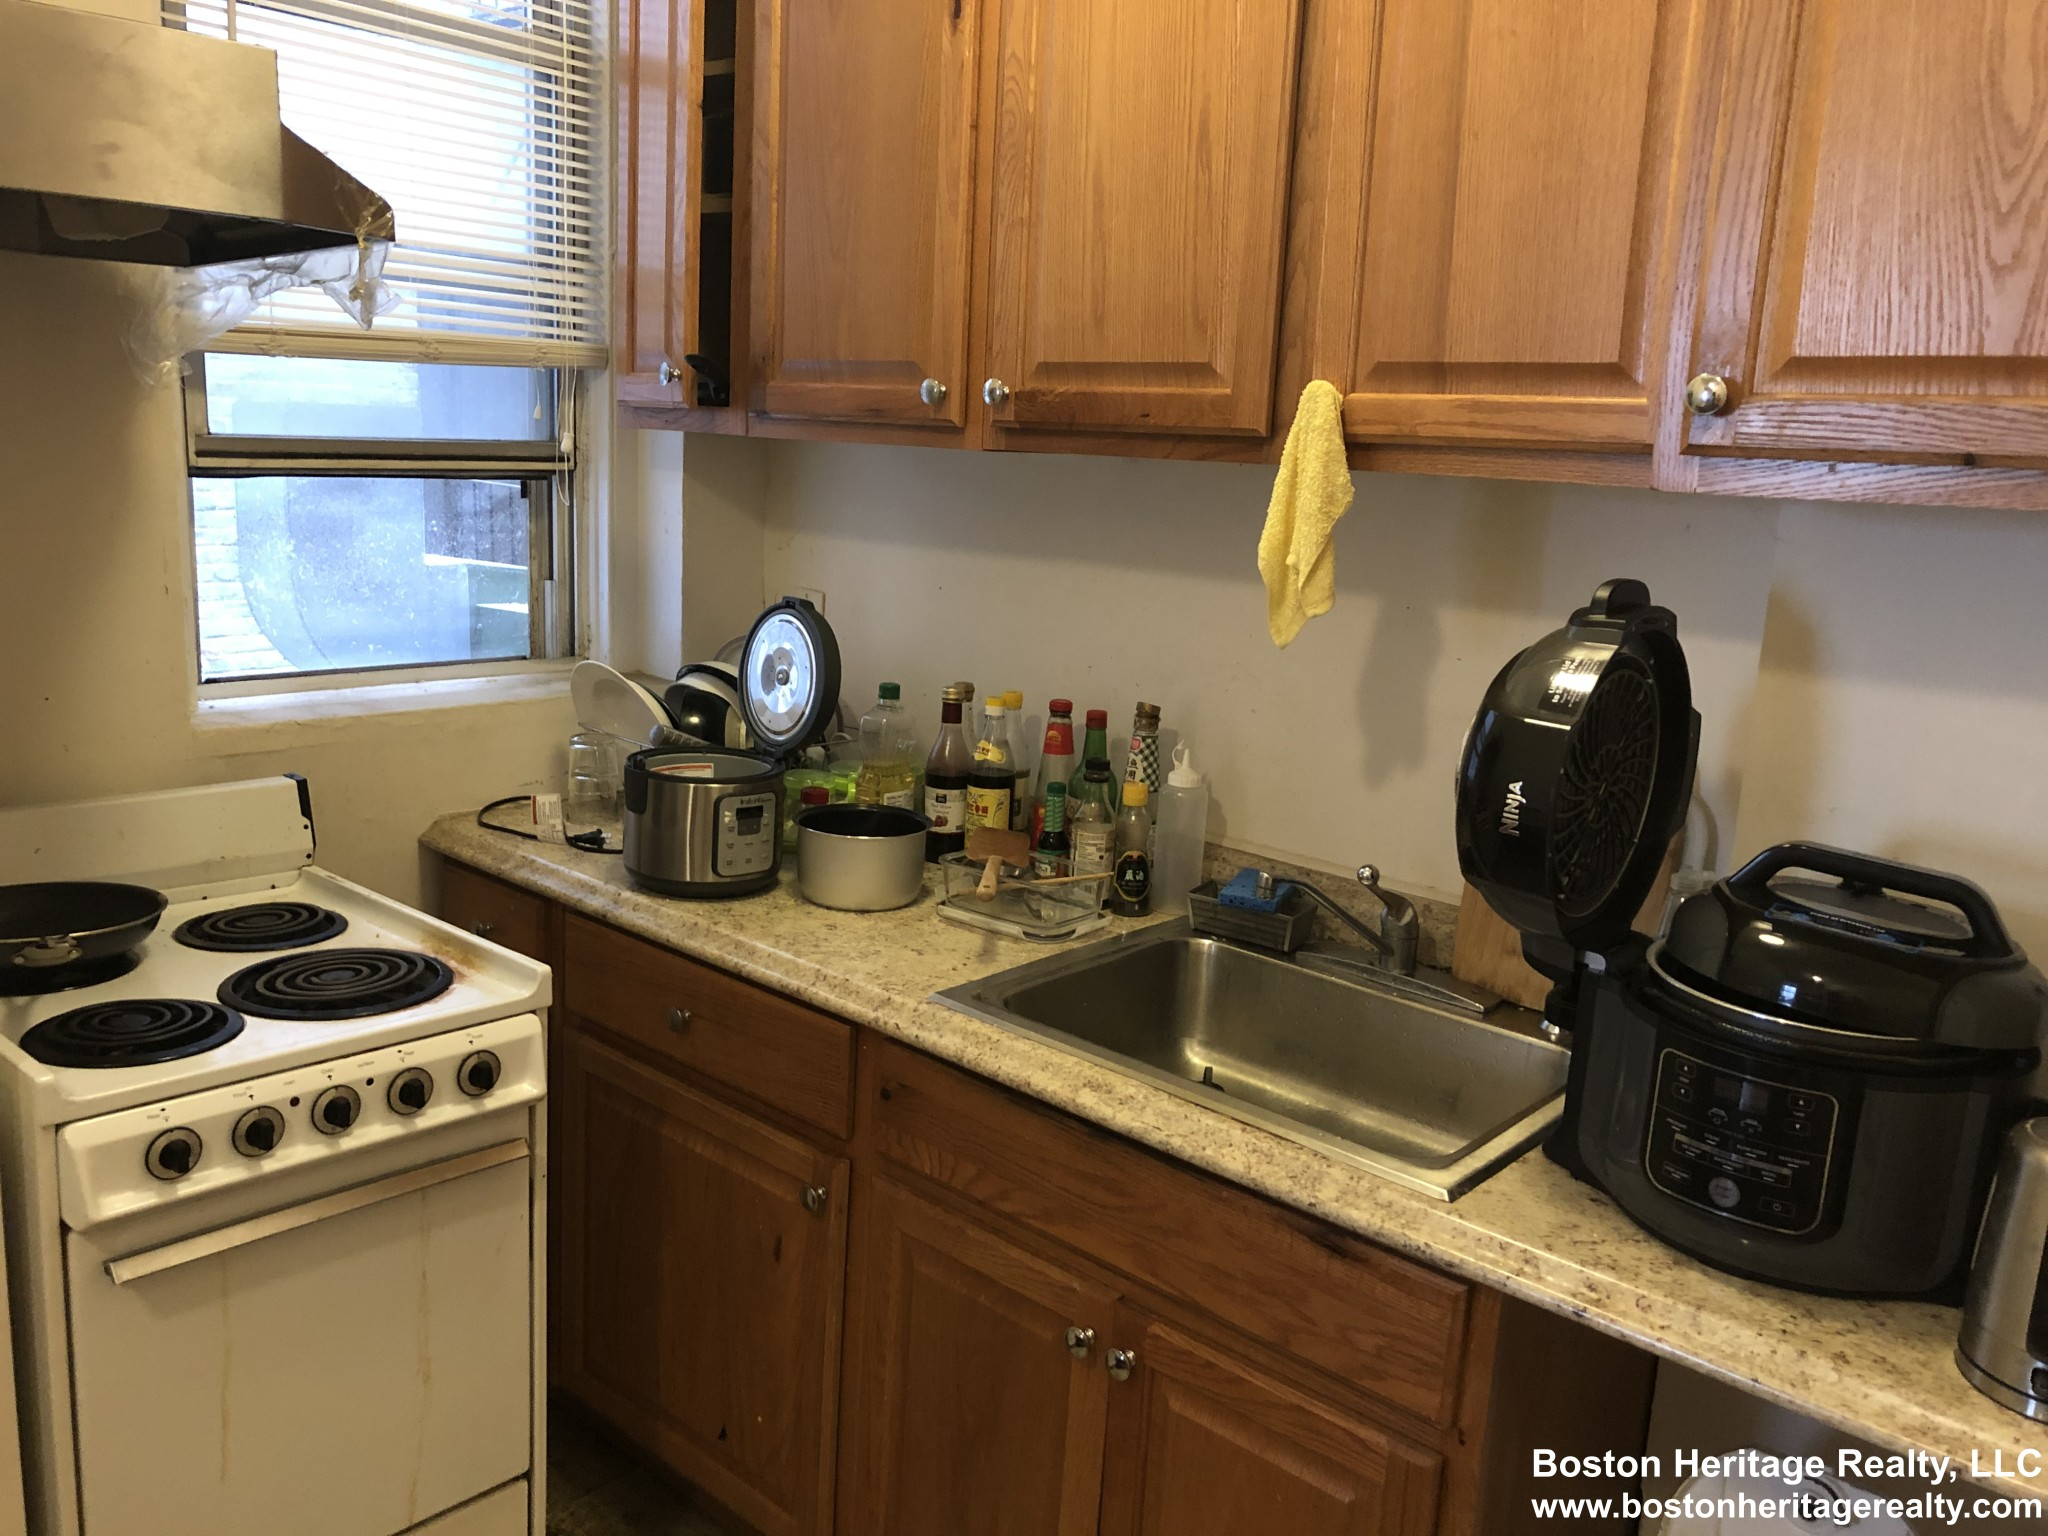 2 Beds, 1 Bath apartment in Boston, Fenway for $1,800